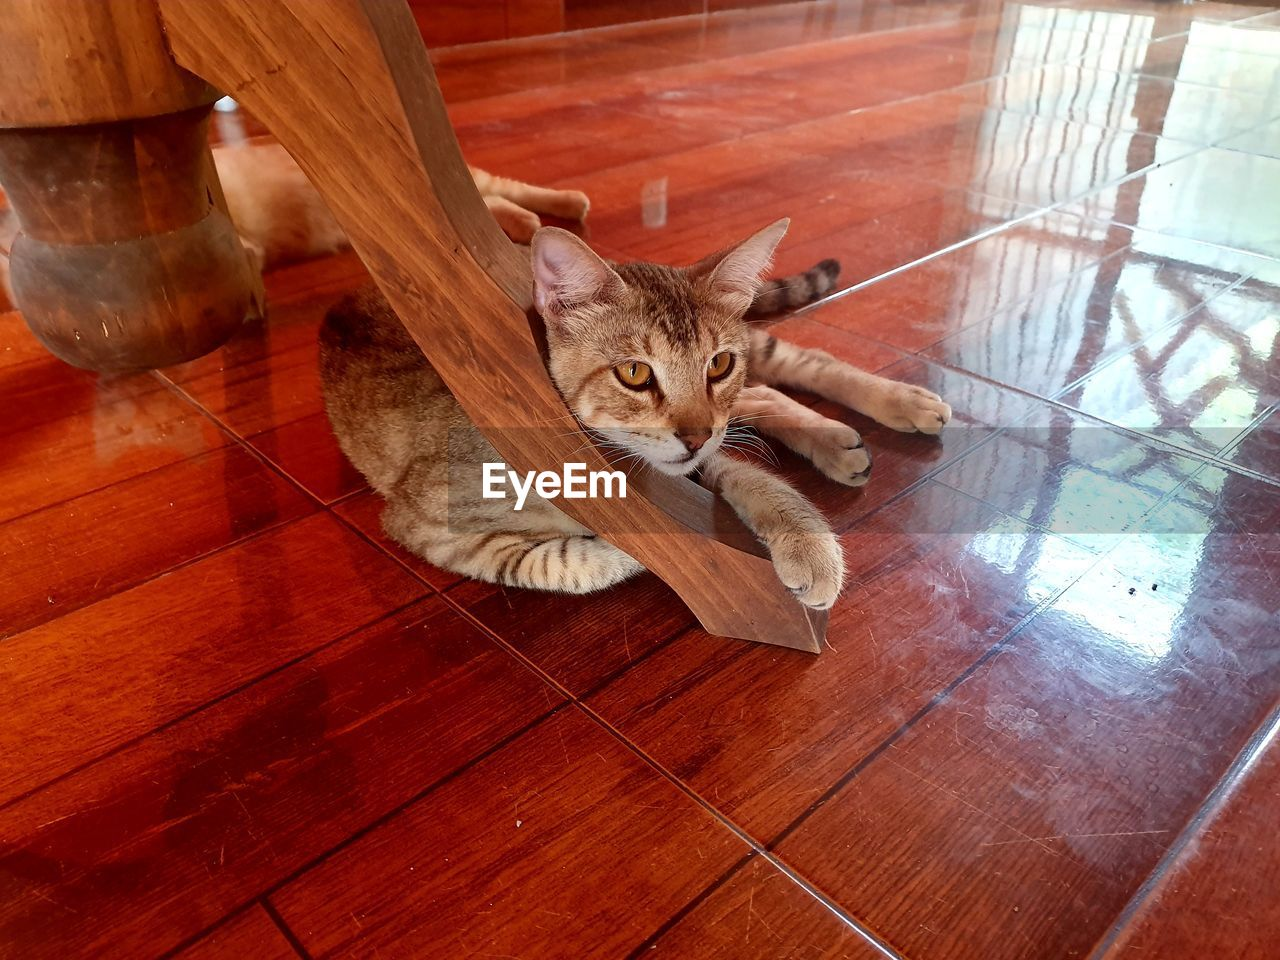 cat, domestic cat, animal themes, feline, domestic, animal, pets, one animal, domestic animals, mammal, vertebrate, flooring, high angle view, no people, indoors, relaxation, resting, wood - material, lying down, looking at camera, whisker, wood, tiled floor, tabby